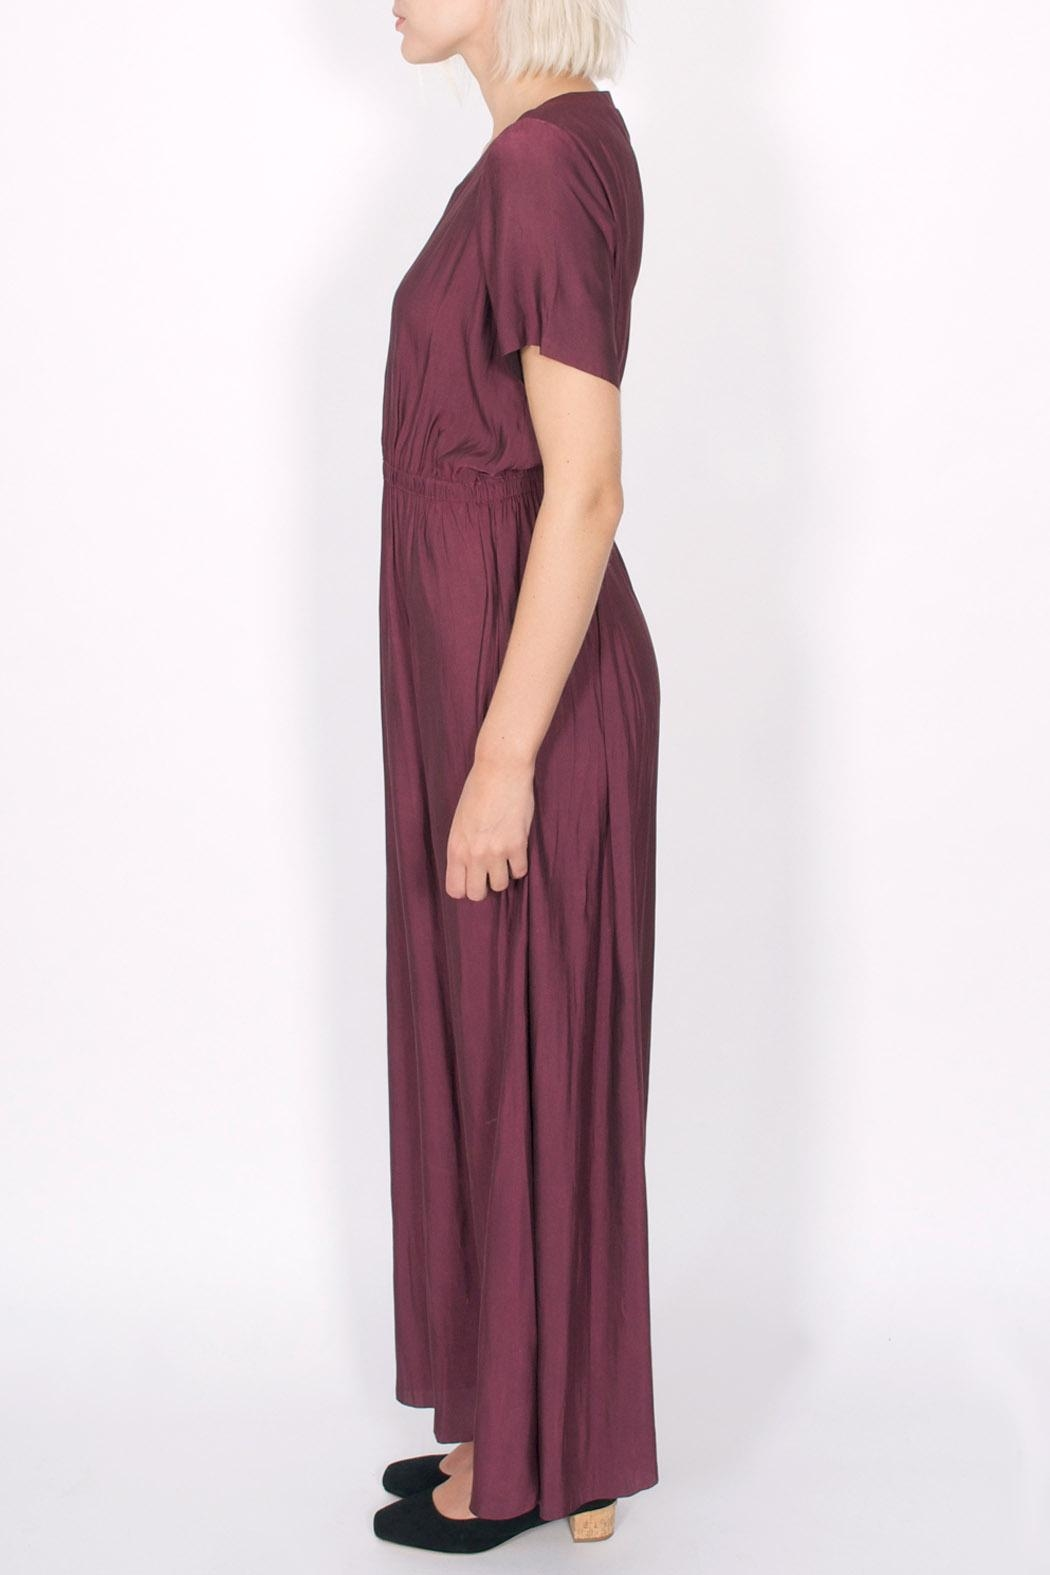 Storm & Marie Dona Maxi Dress - Front Full Image